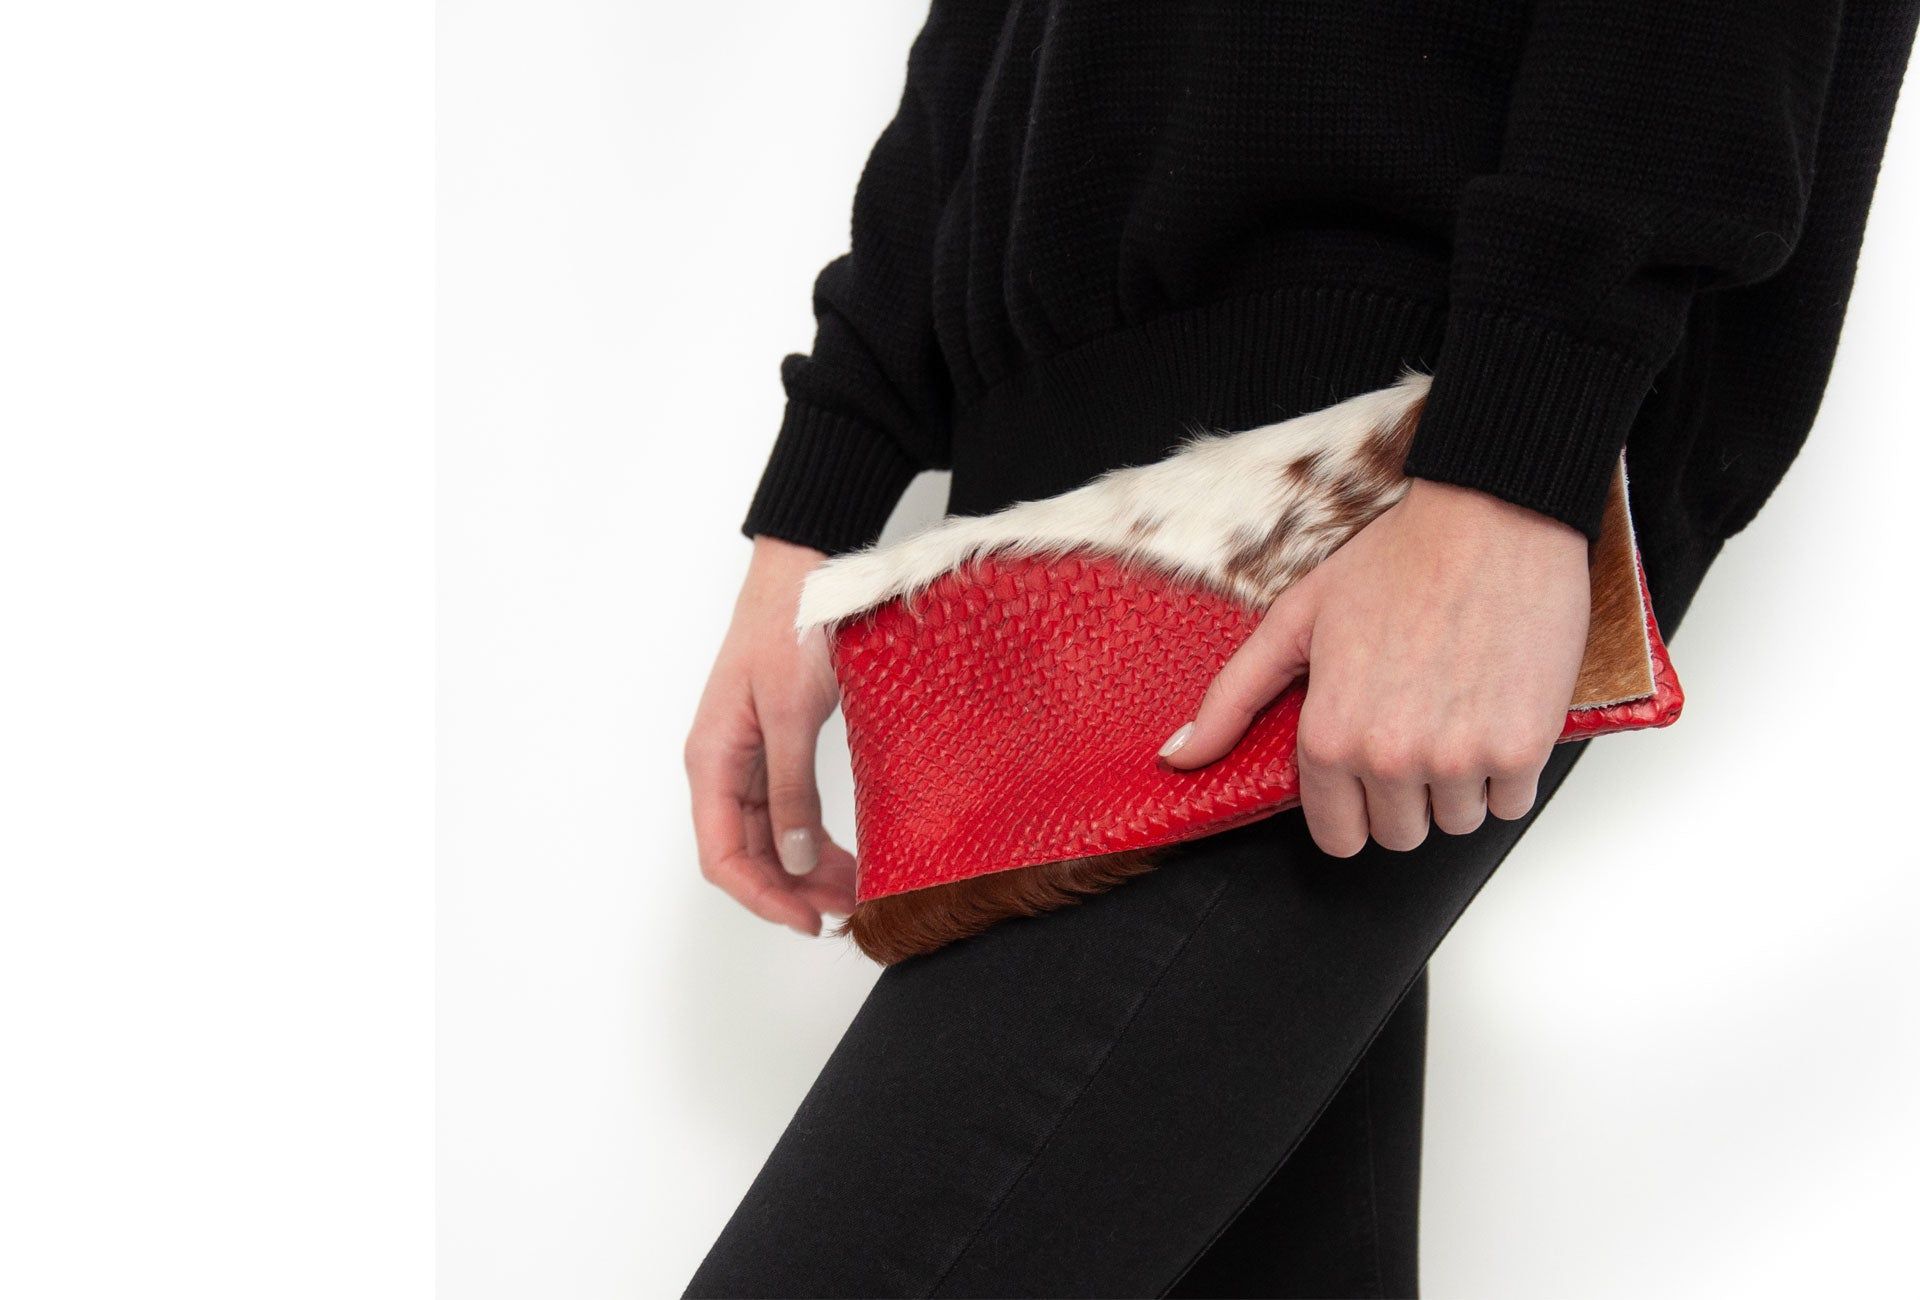 Clutch bag bold collection fits phone, keys, sunglasses, lip gloss and more. Our limited-edition handmade leather bags encourage you to own your style